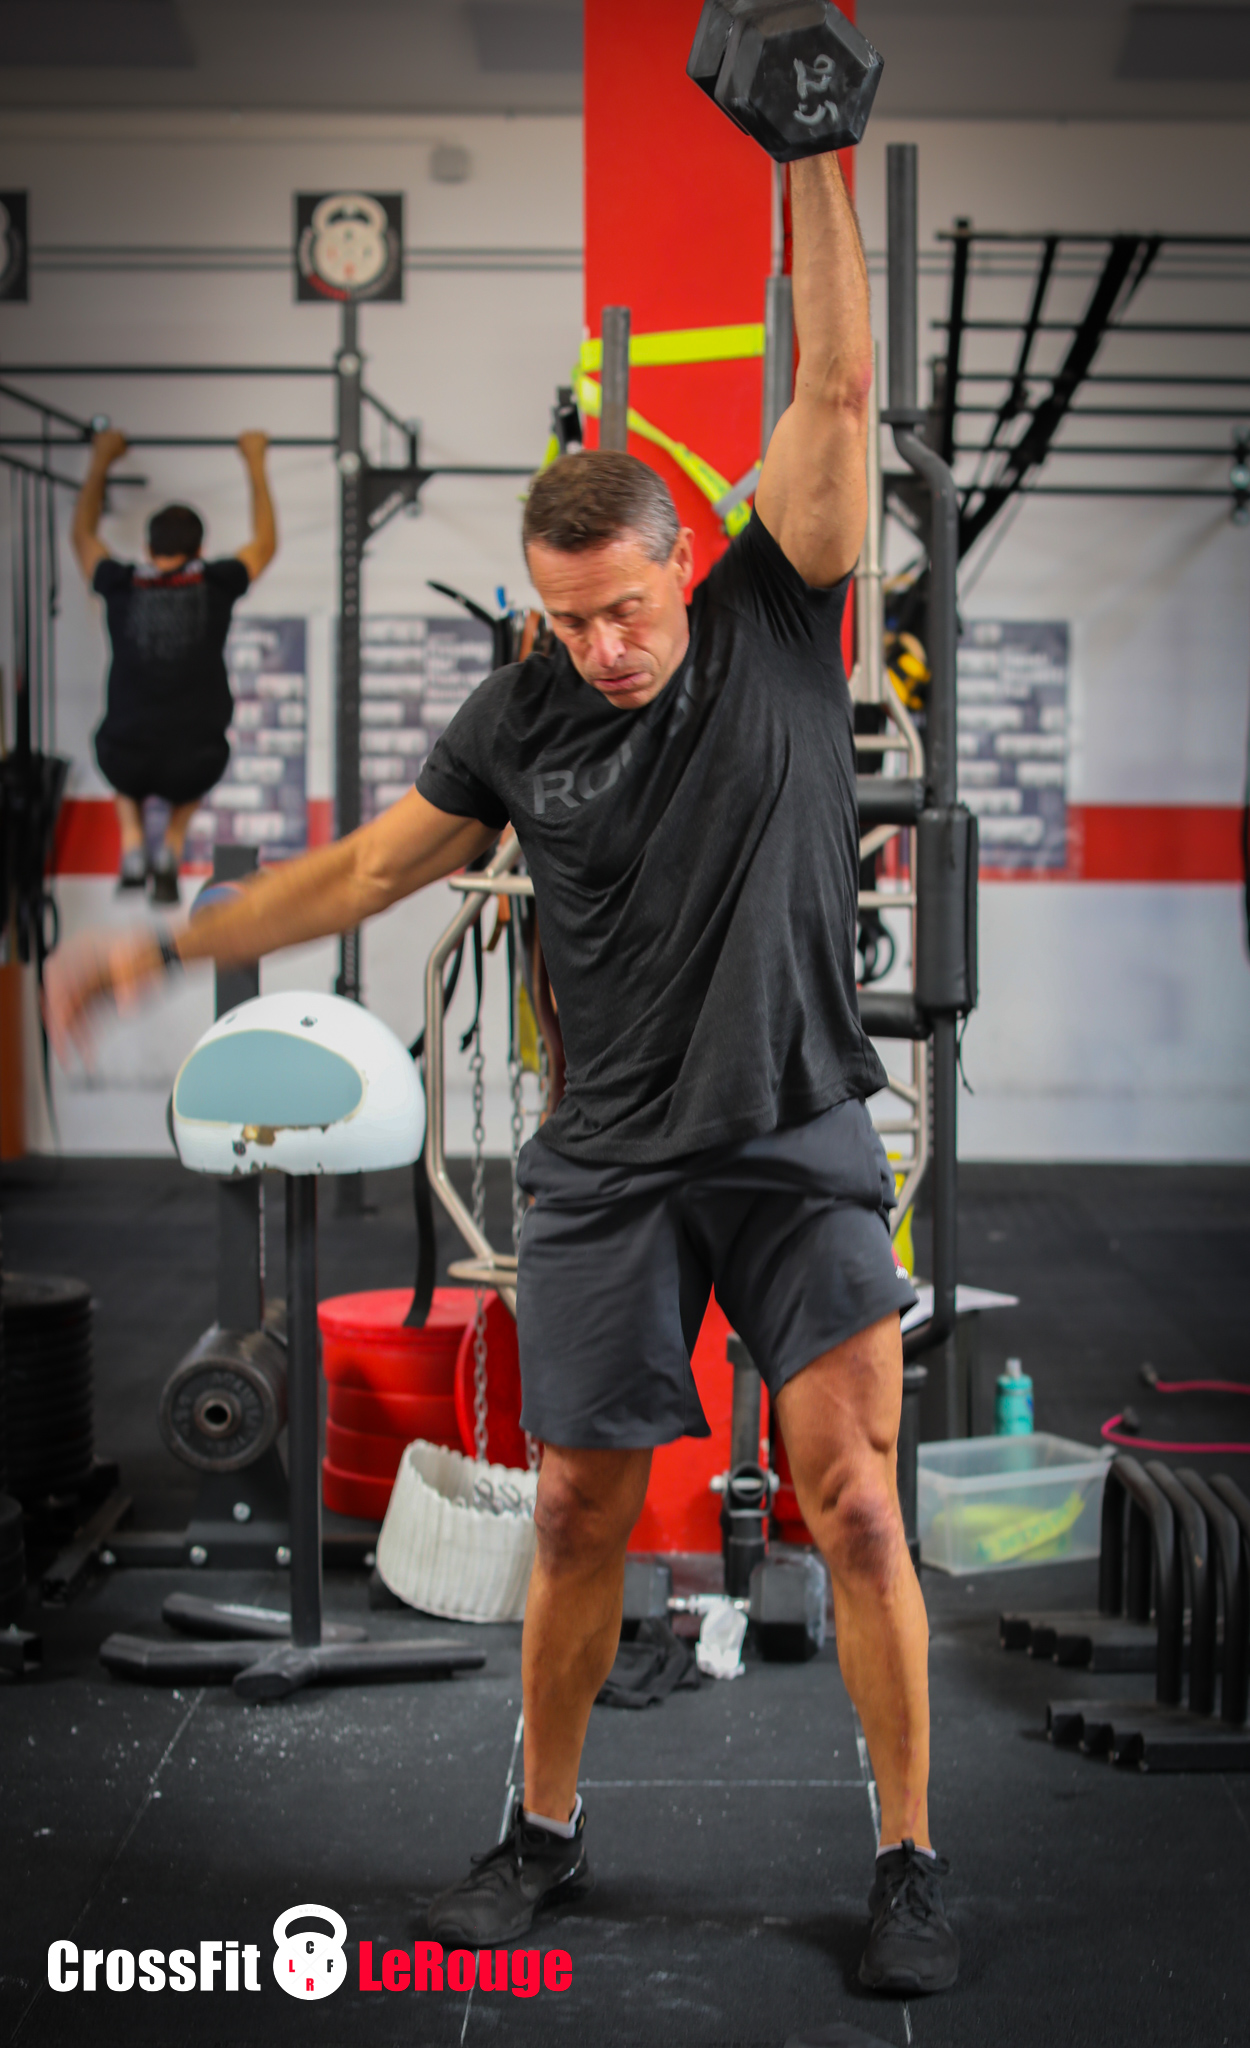 CrossFit toes-to-bar snatch